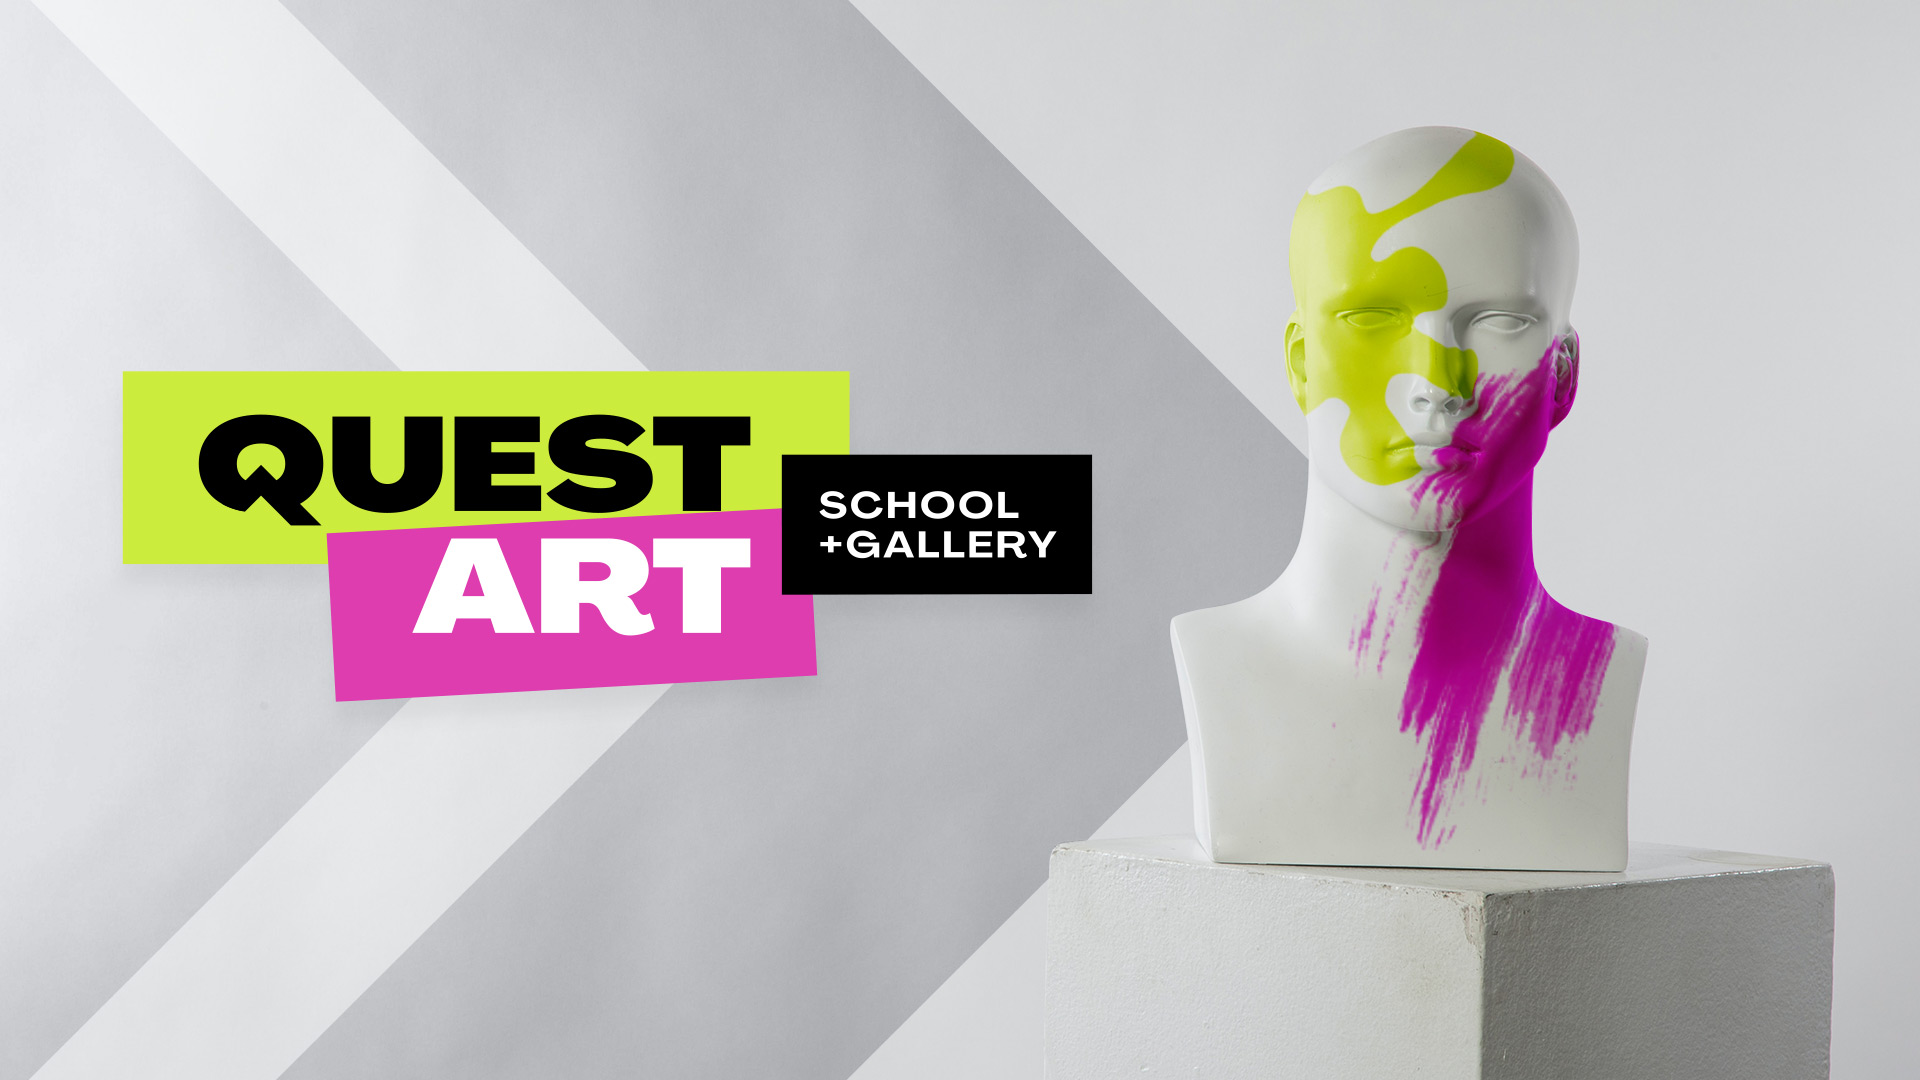 quest art school and gallery case study banner